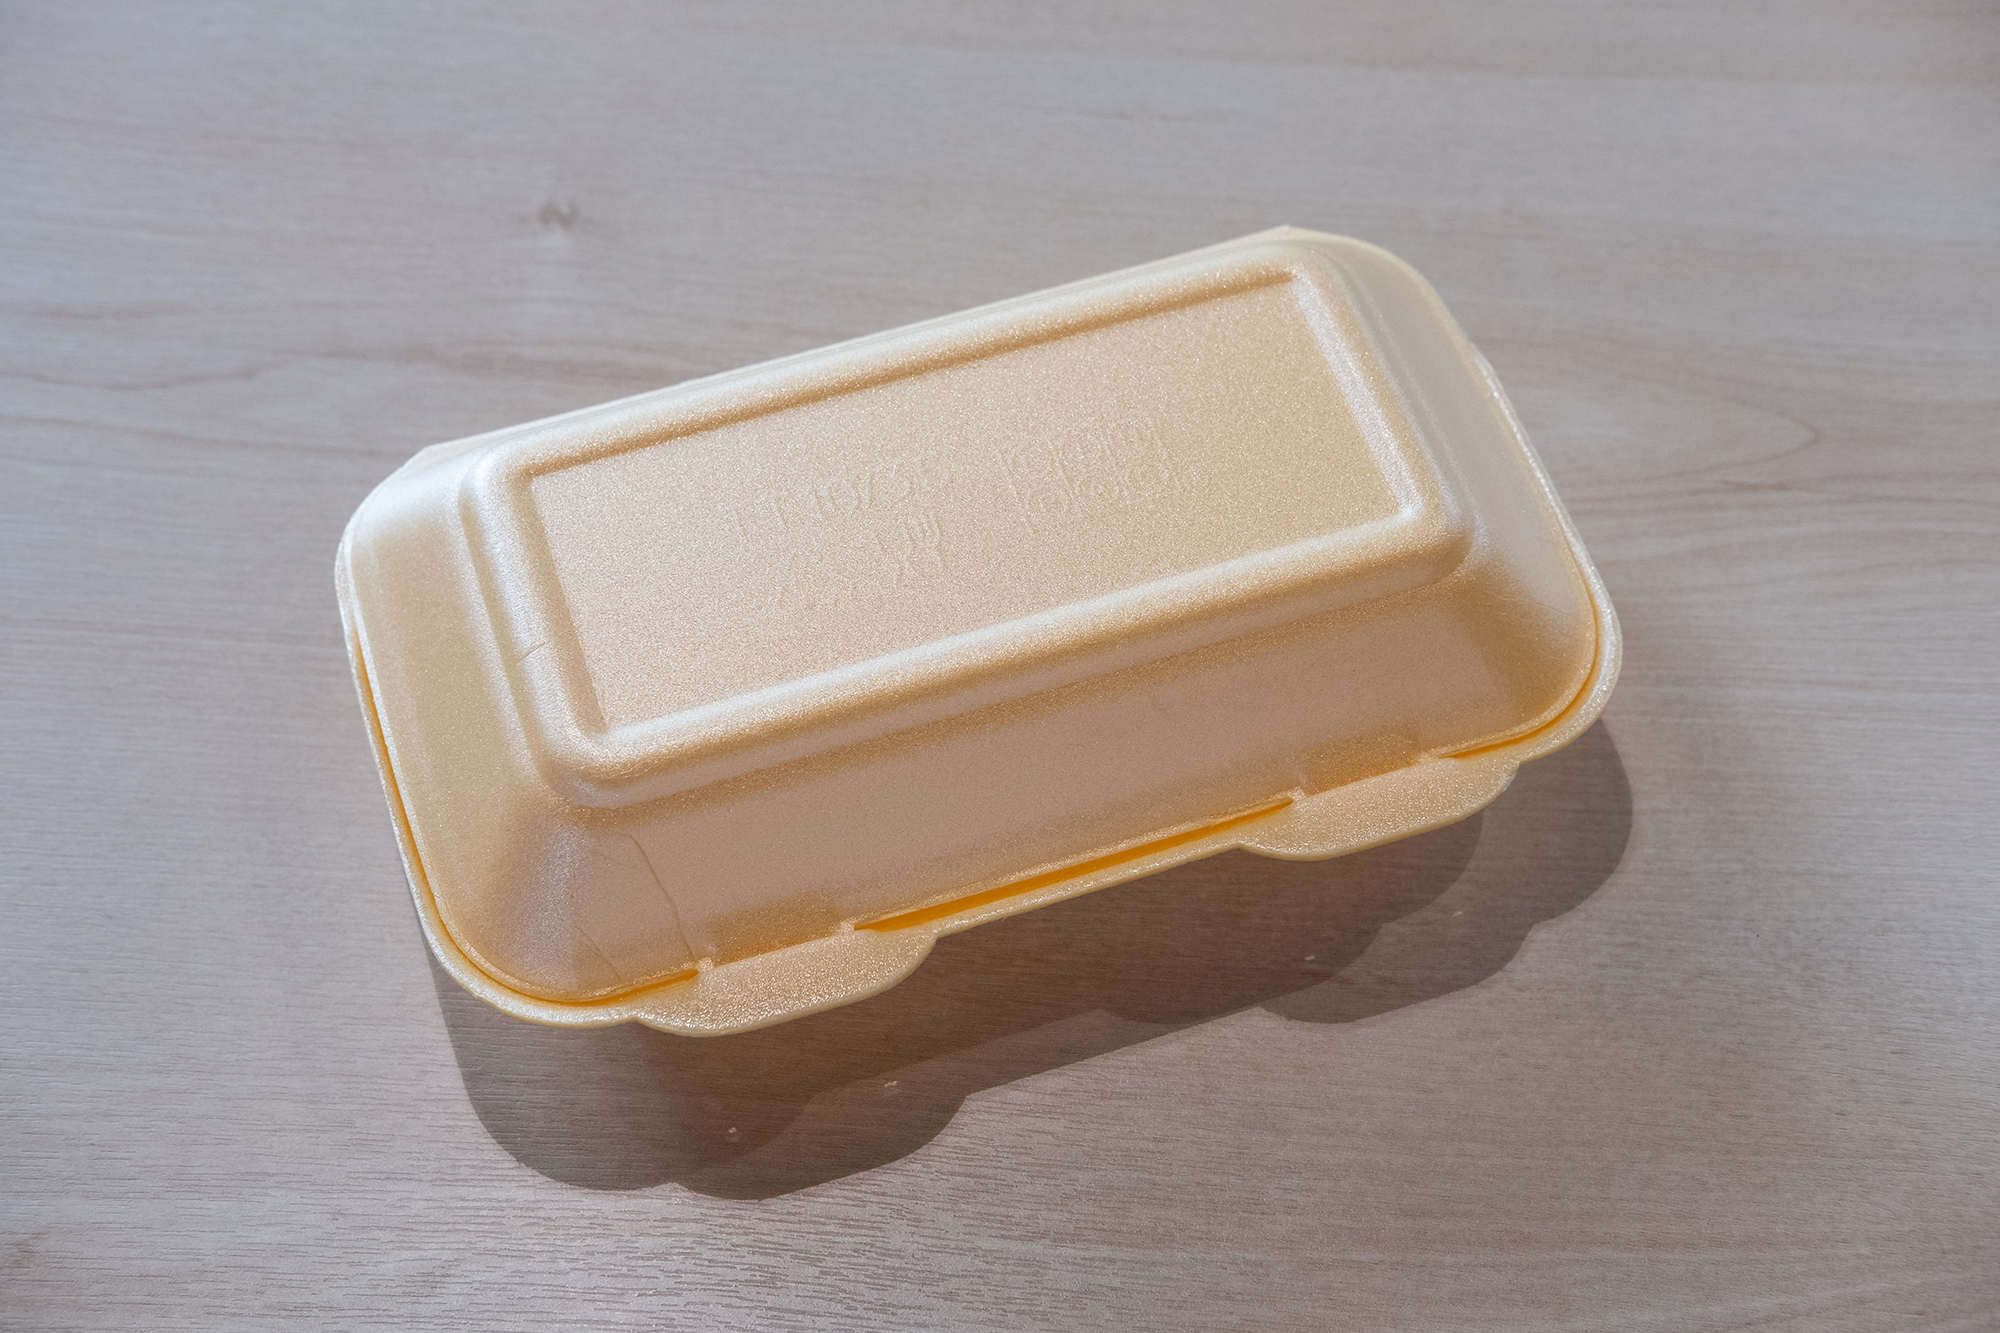 photo of a single-use disposable box